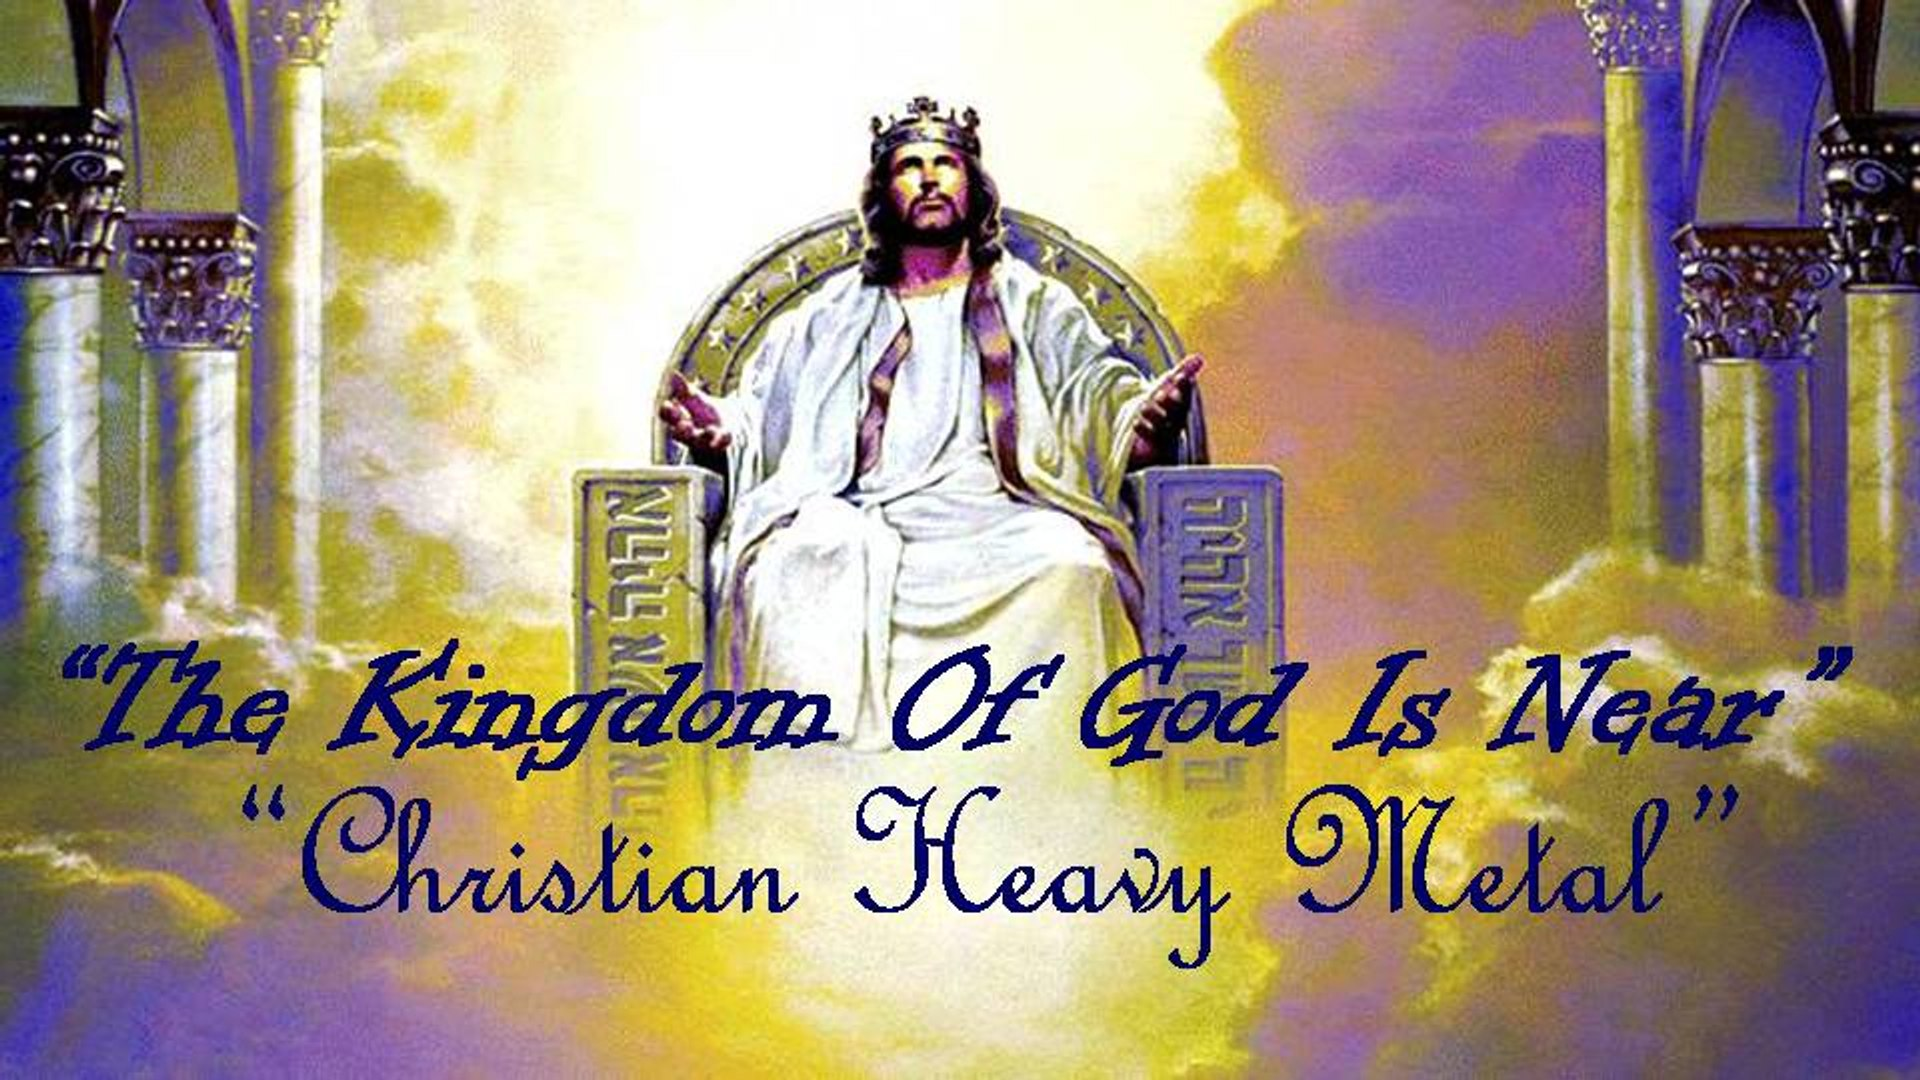 The Kingdom Of God Is Near, The Kingdom Of Heaven Is Near: category-New Christian Music Heavy Metal